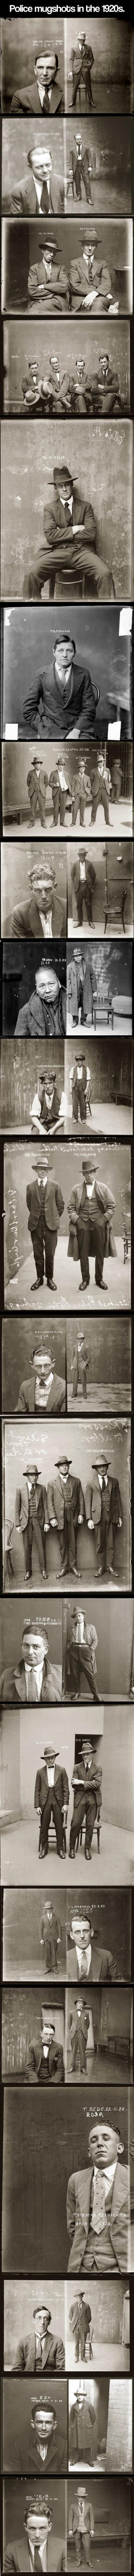 when criminals used to look really good, police mughsots from the 1920's